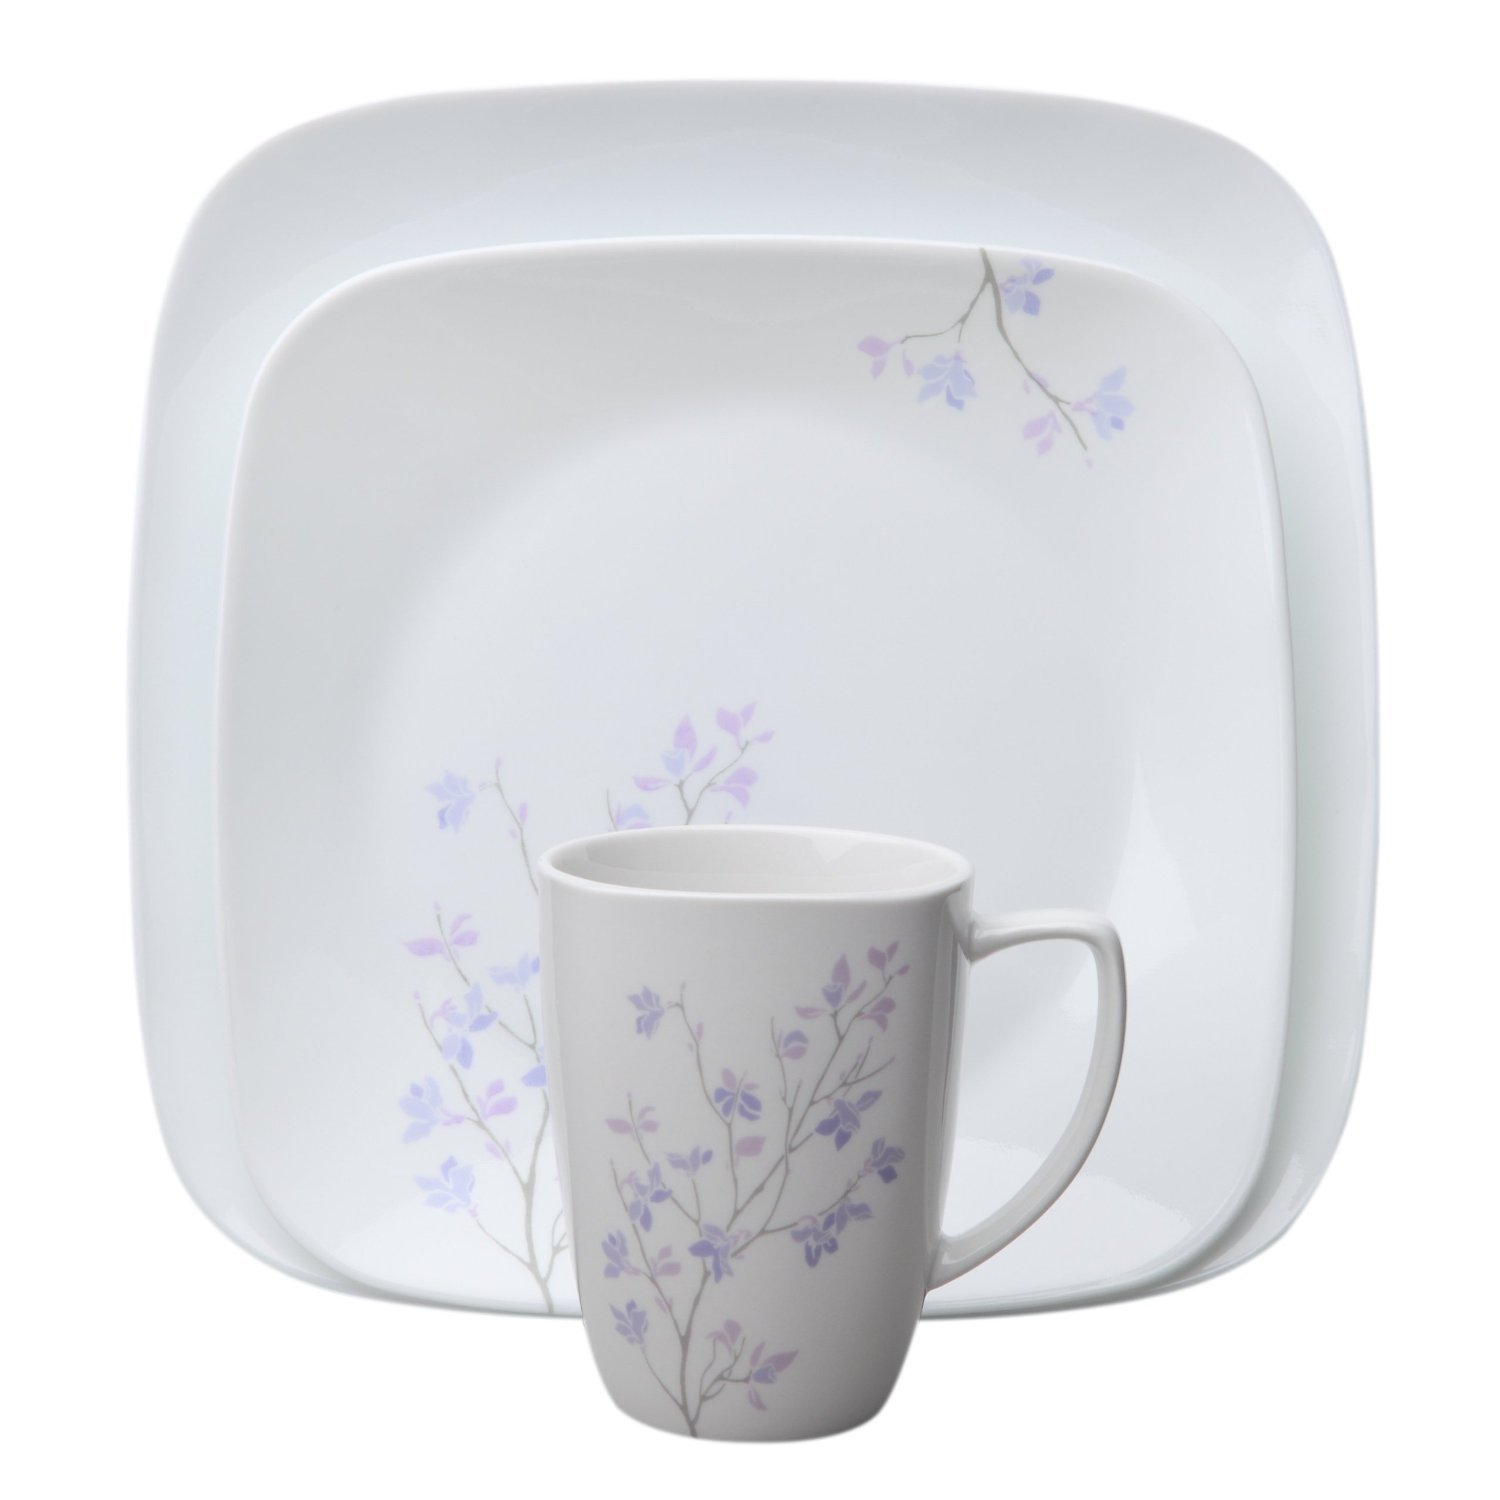 Corelle Square 32-Piece Dinnerware Set, Jacaranda, Service for 8